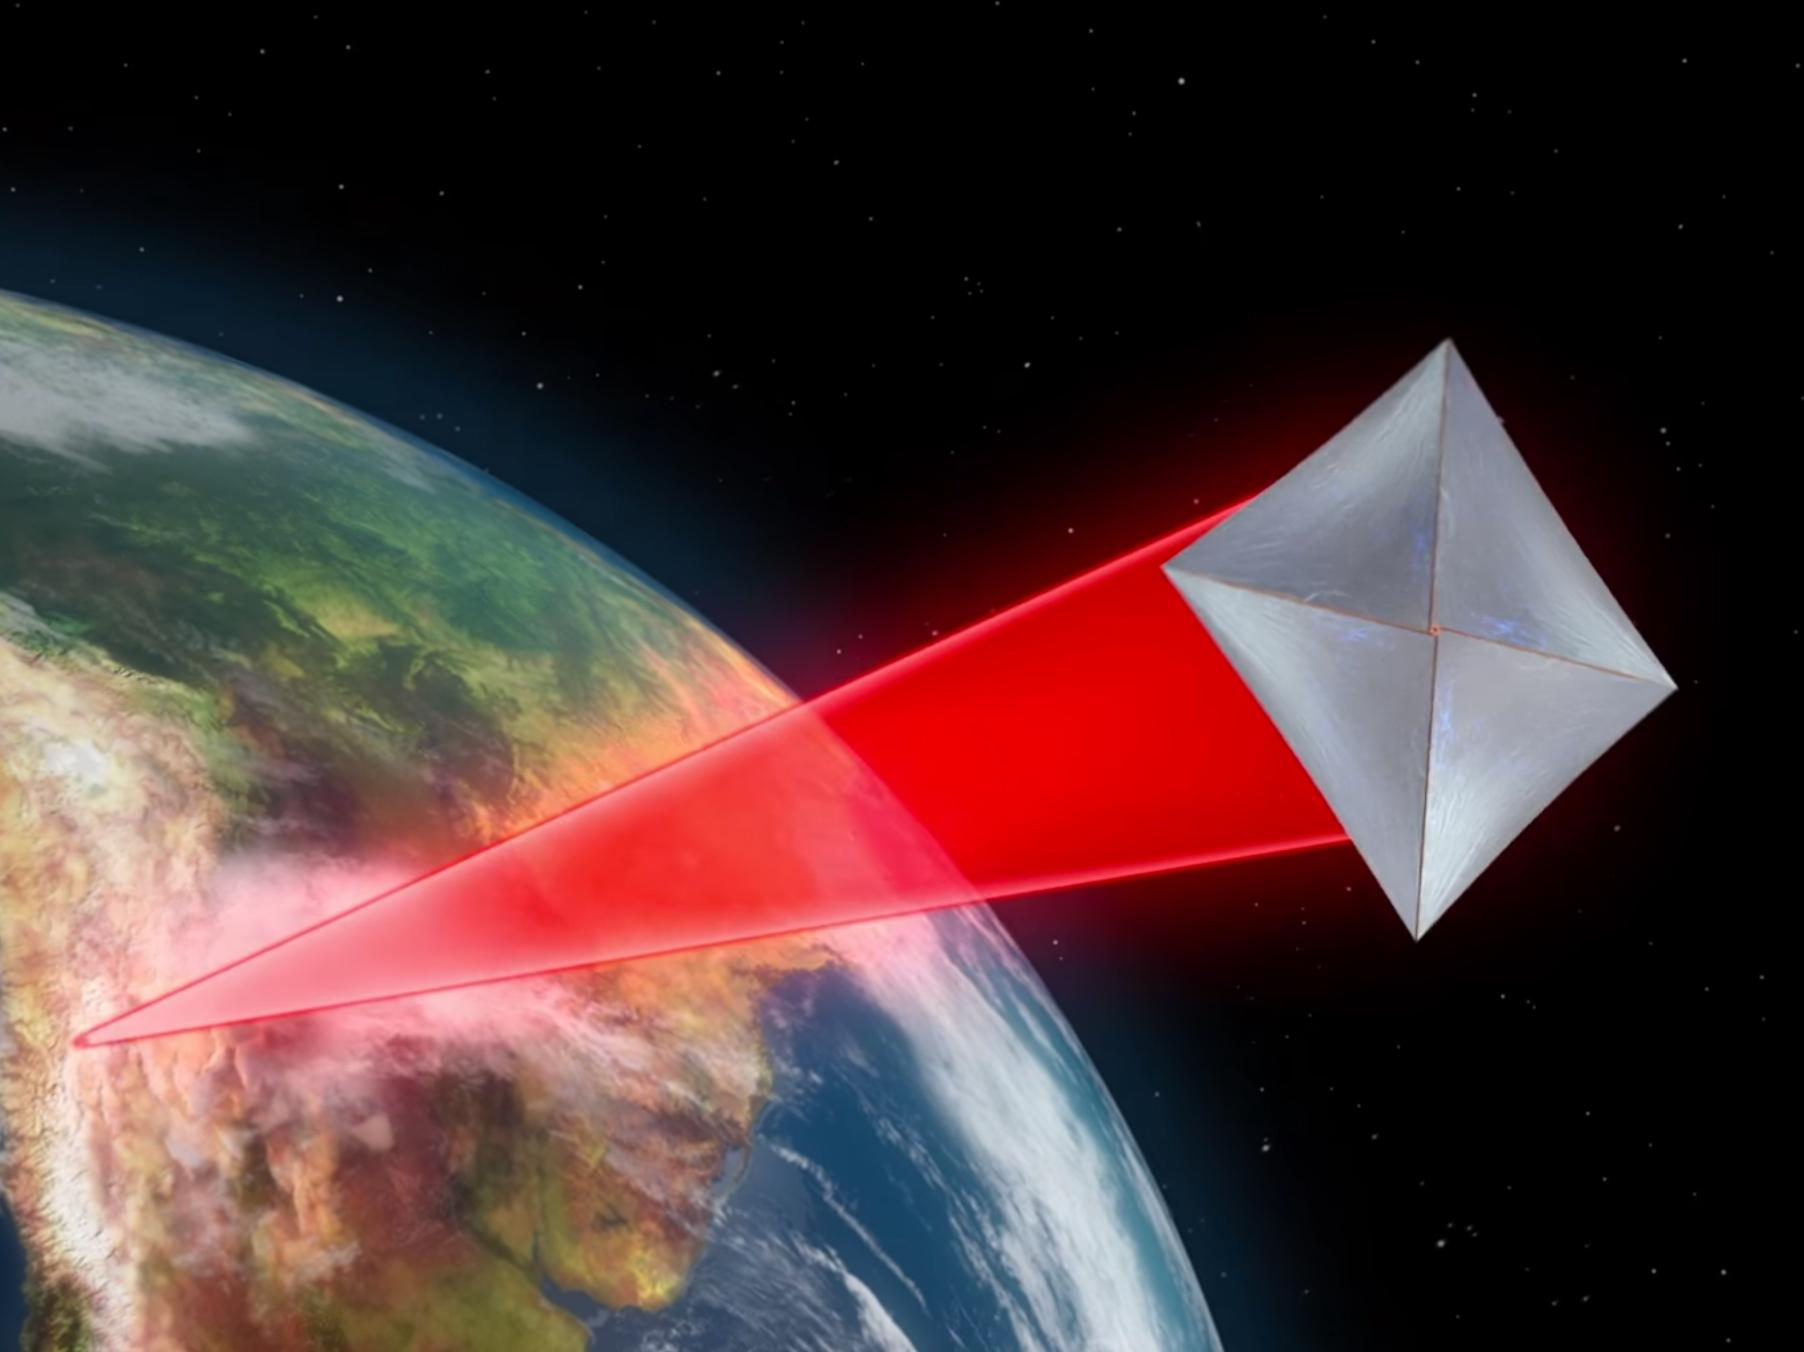 Time travel may be possible after scientists successfully send light - Nasa And Stephen Hawking Are Working On A Nano Starship That Can Travel 1 5th The Speed Of Light The Independent